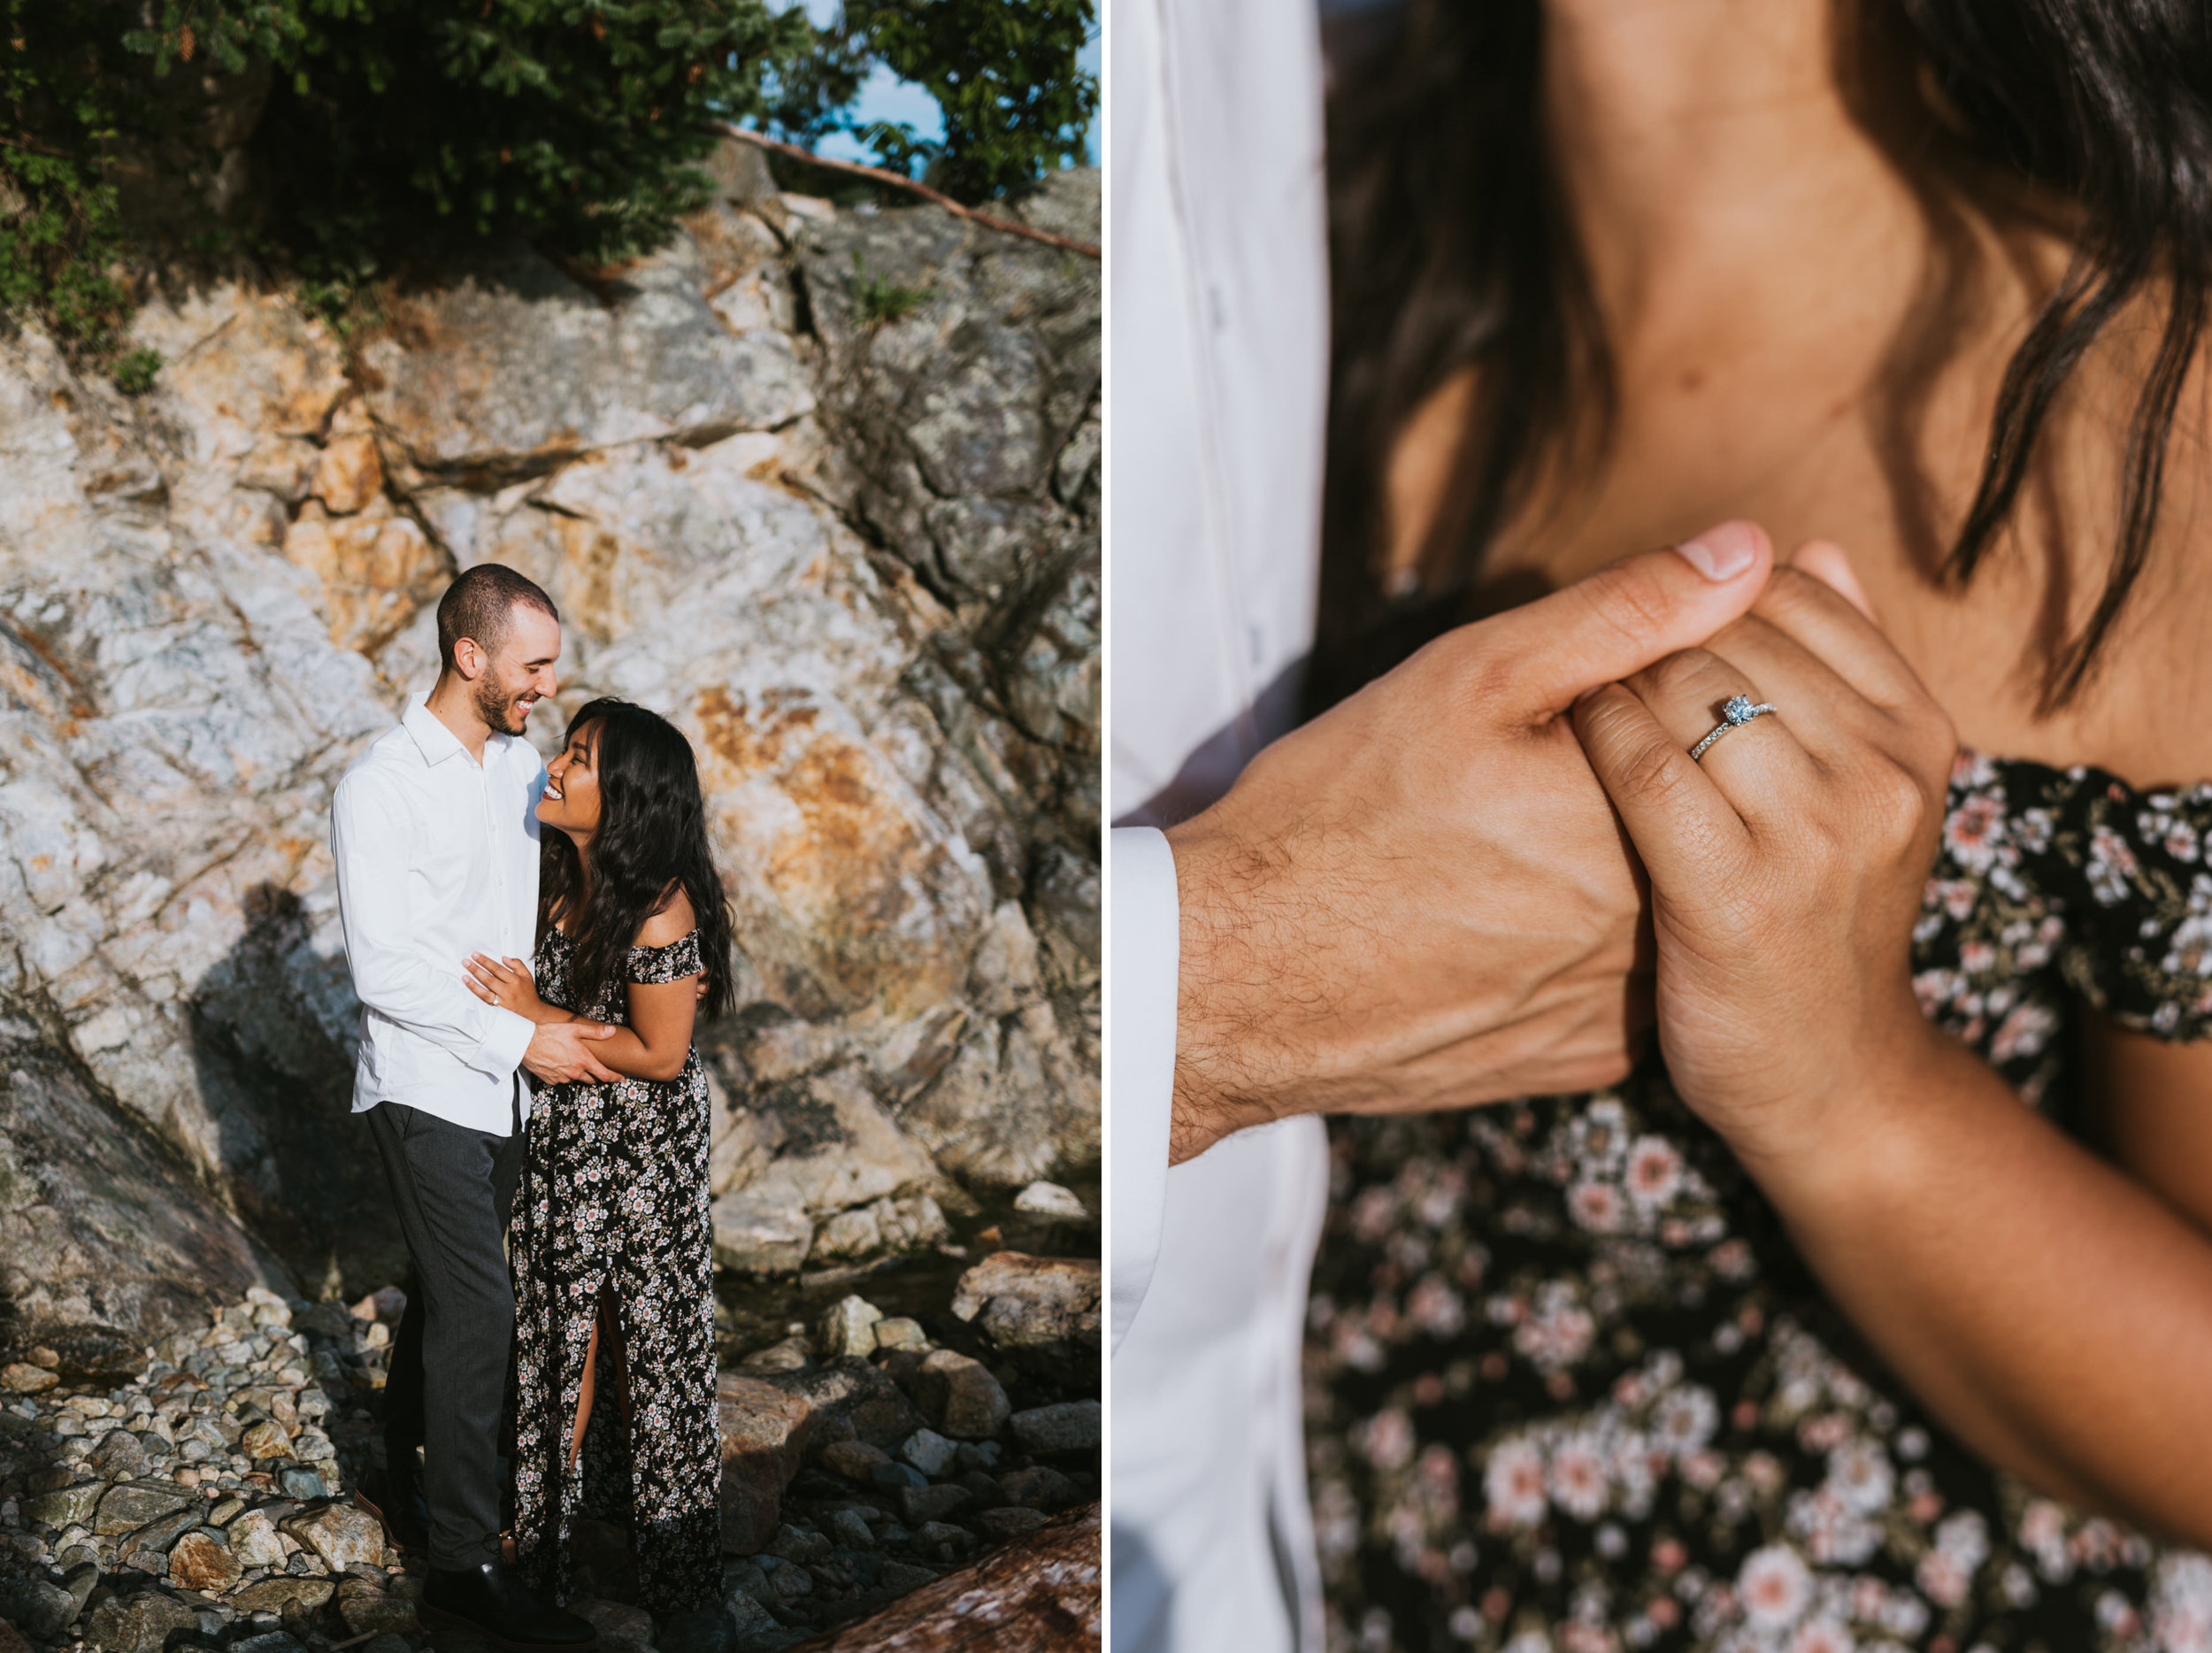 oliver-rabanes-vancouver-surrey-whytecliff-park-proposal-engagement-photography-35.jpg